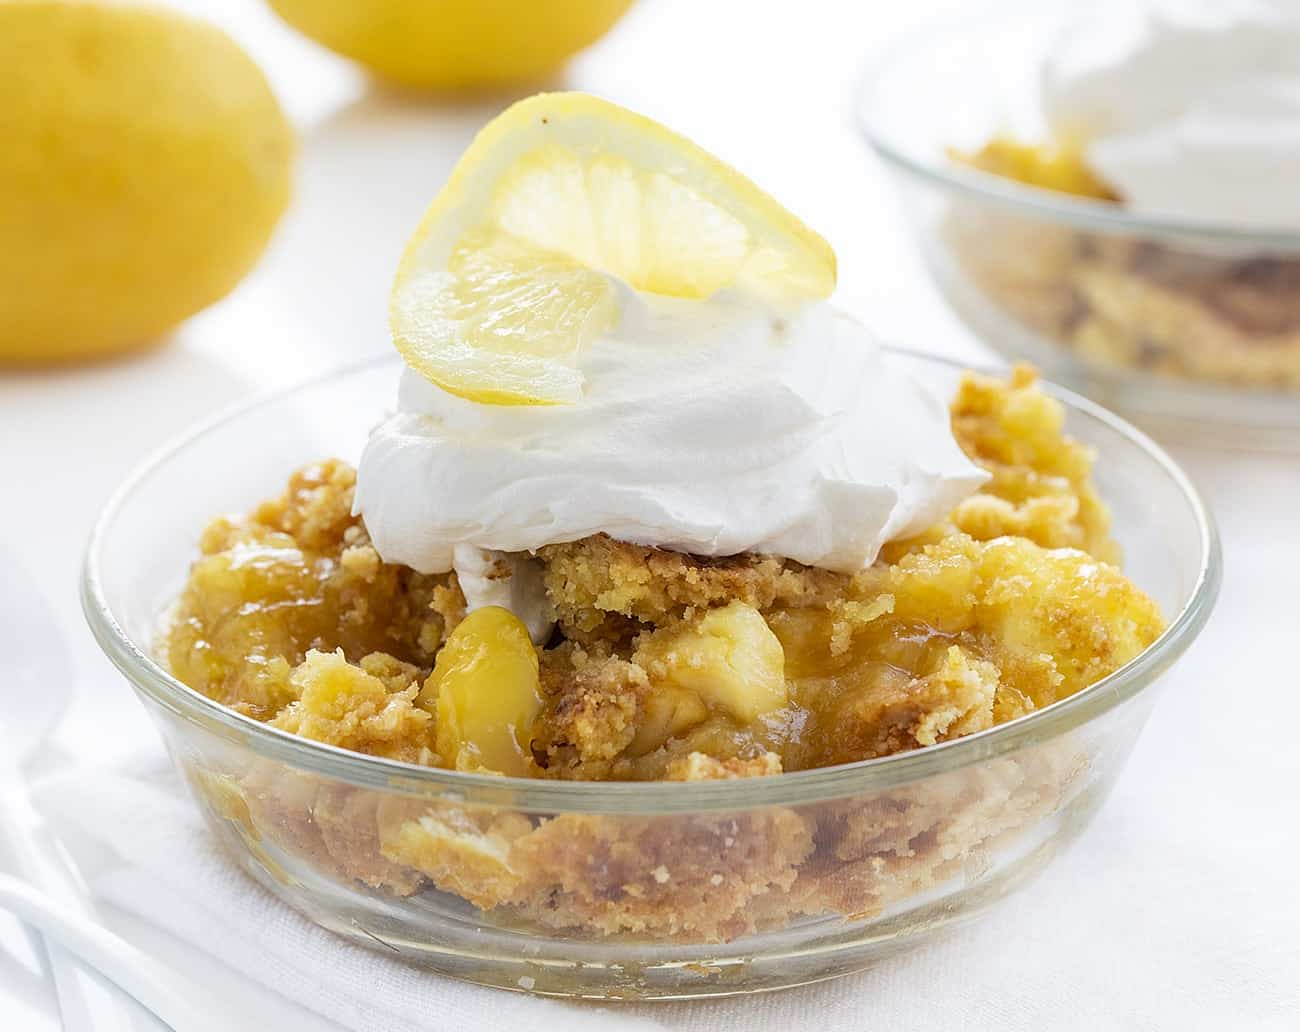 One Bowl of Lemon Cream Cheese Dump Cake with Whipped Cream and a Lemon Slice on Top